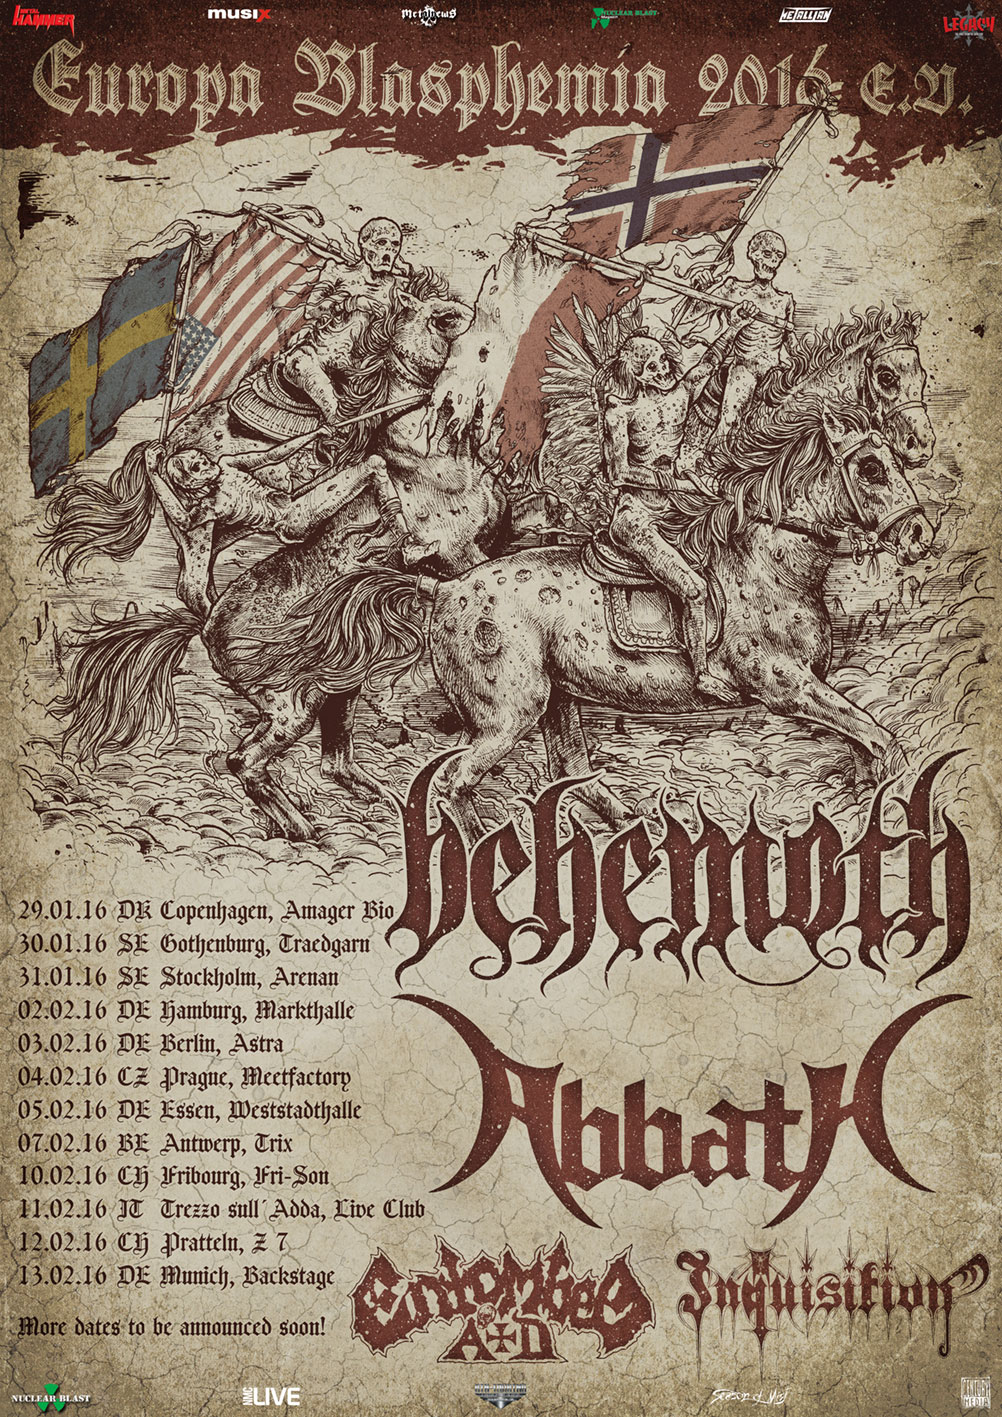 Behemoth Tour 2016 Plakat